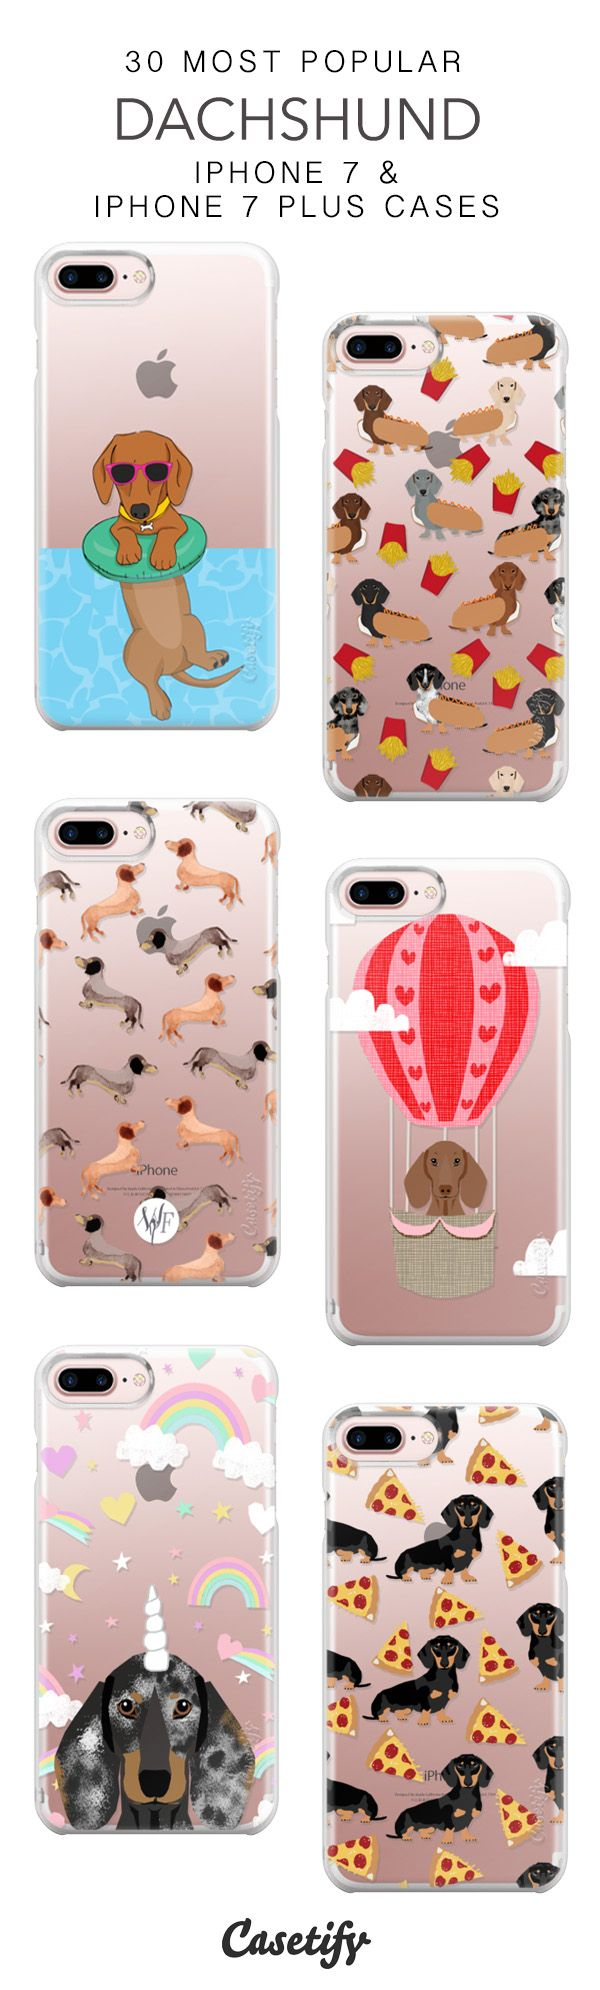 30 Most Popular Dachshund Protective iPhone 7 Cases and iPhone 7 Plus Cases. More Doggie iPhone case here > https://www.casetify.com/collections/top_100_designs#/?vc=d6tKr6R69d